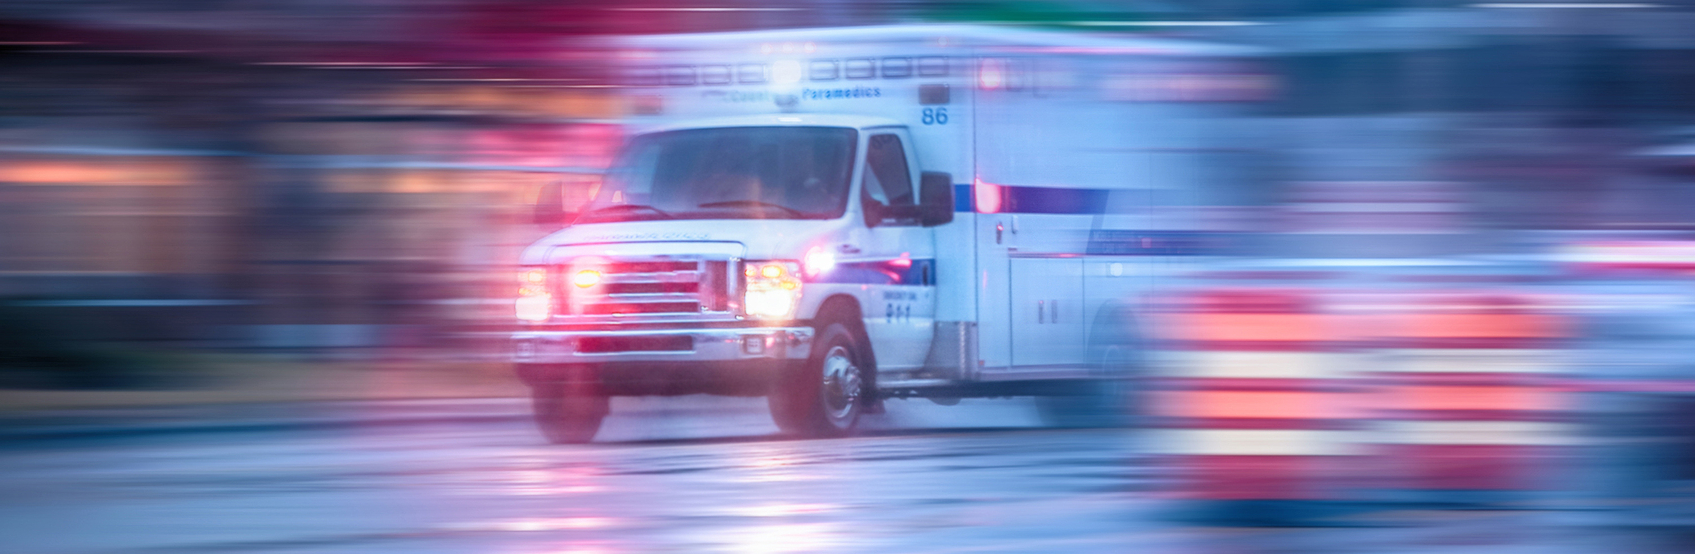 Ambulance RFPs are Complicated